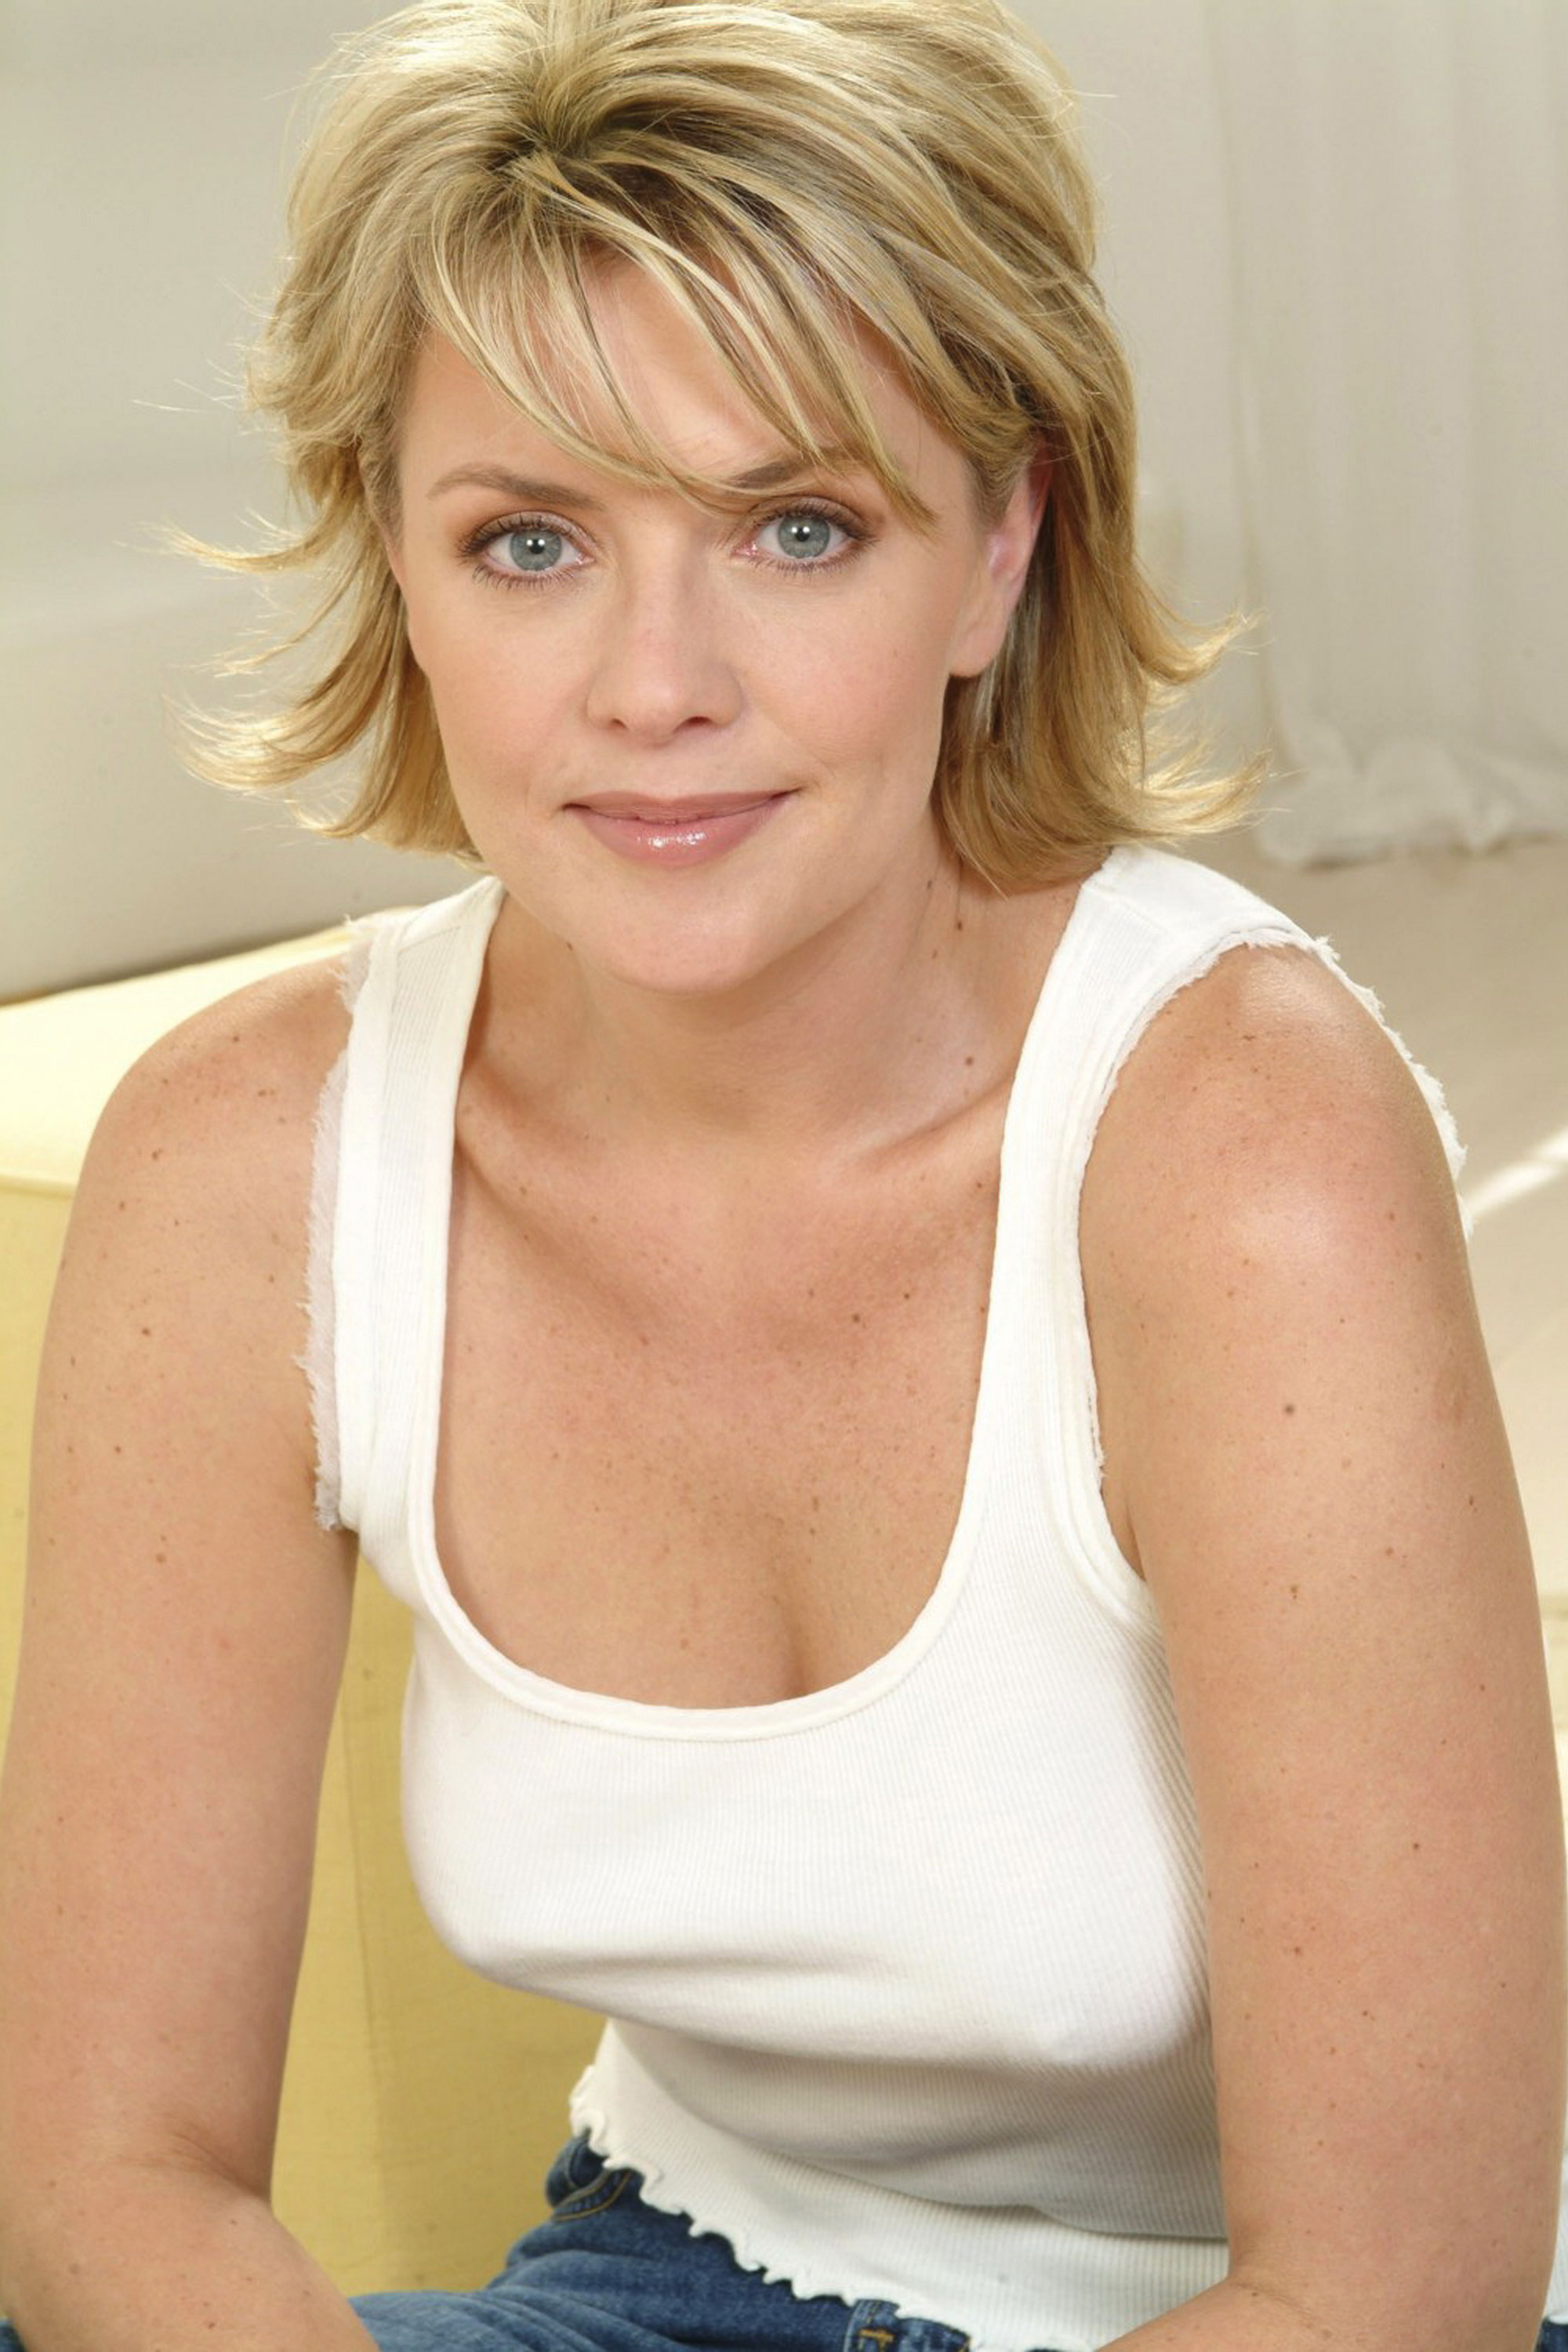 amanda tapping 2016amanda tapping 2016, amanda tapping twitter, amanda tapping imdb, amanda tapping husband, amanda tapping news, amanda tapping supernatural, amanda tapping instagram, amanda tapping stargate, amanda tapping facebook, amanda tapping stuck watch online, amanda tapping and her daughter, amanda tapping 2014, amanda tapping sanctuary, amanda tapping wikipedia